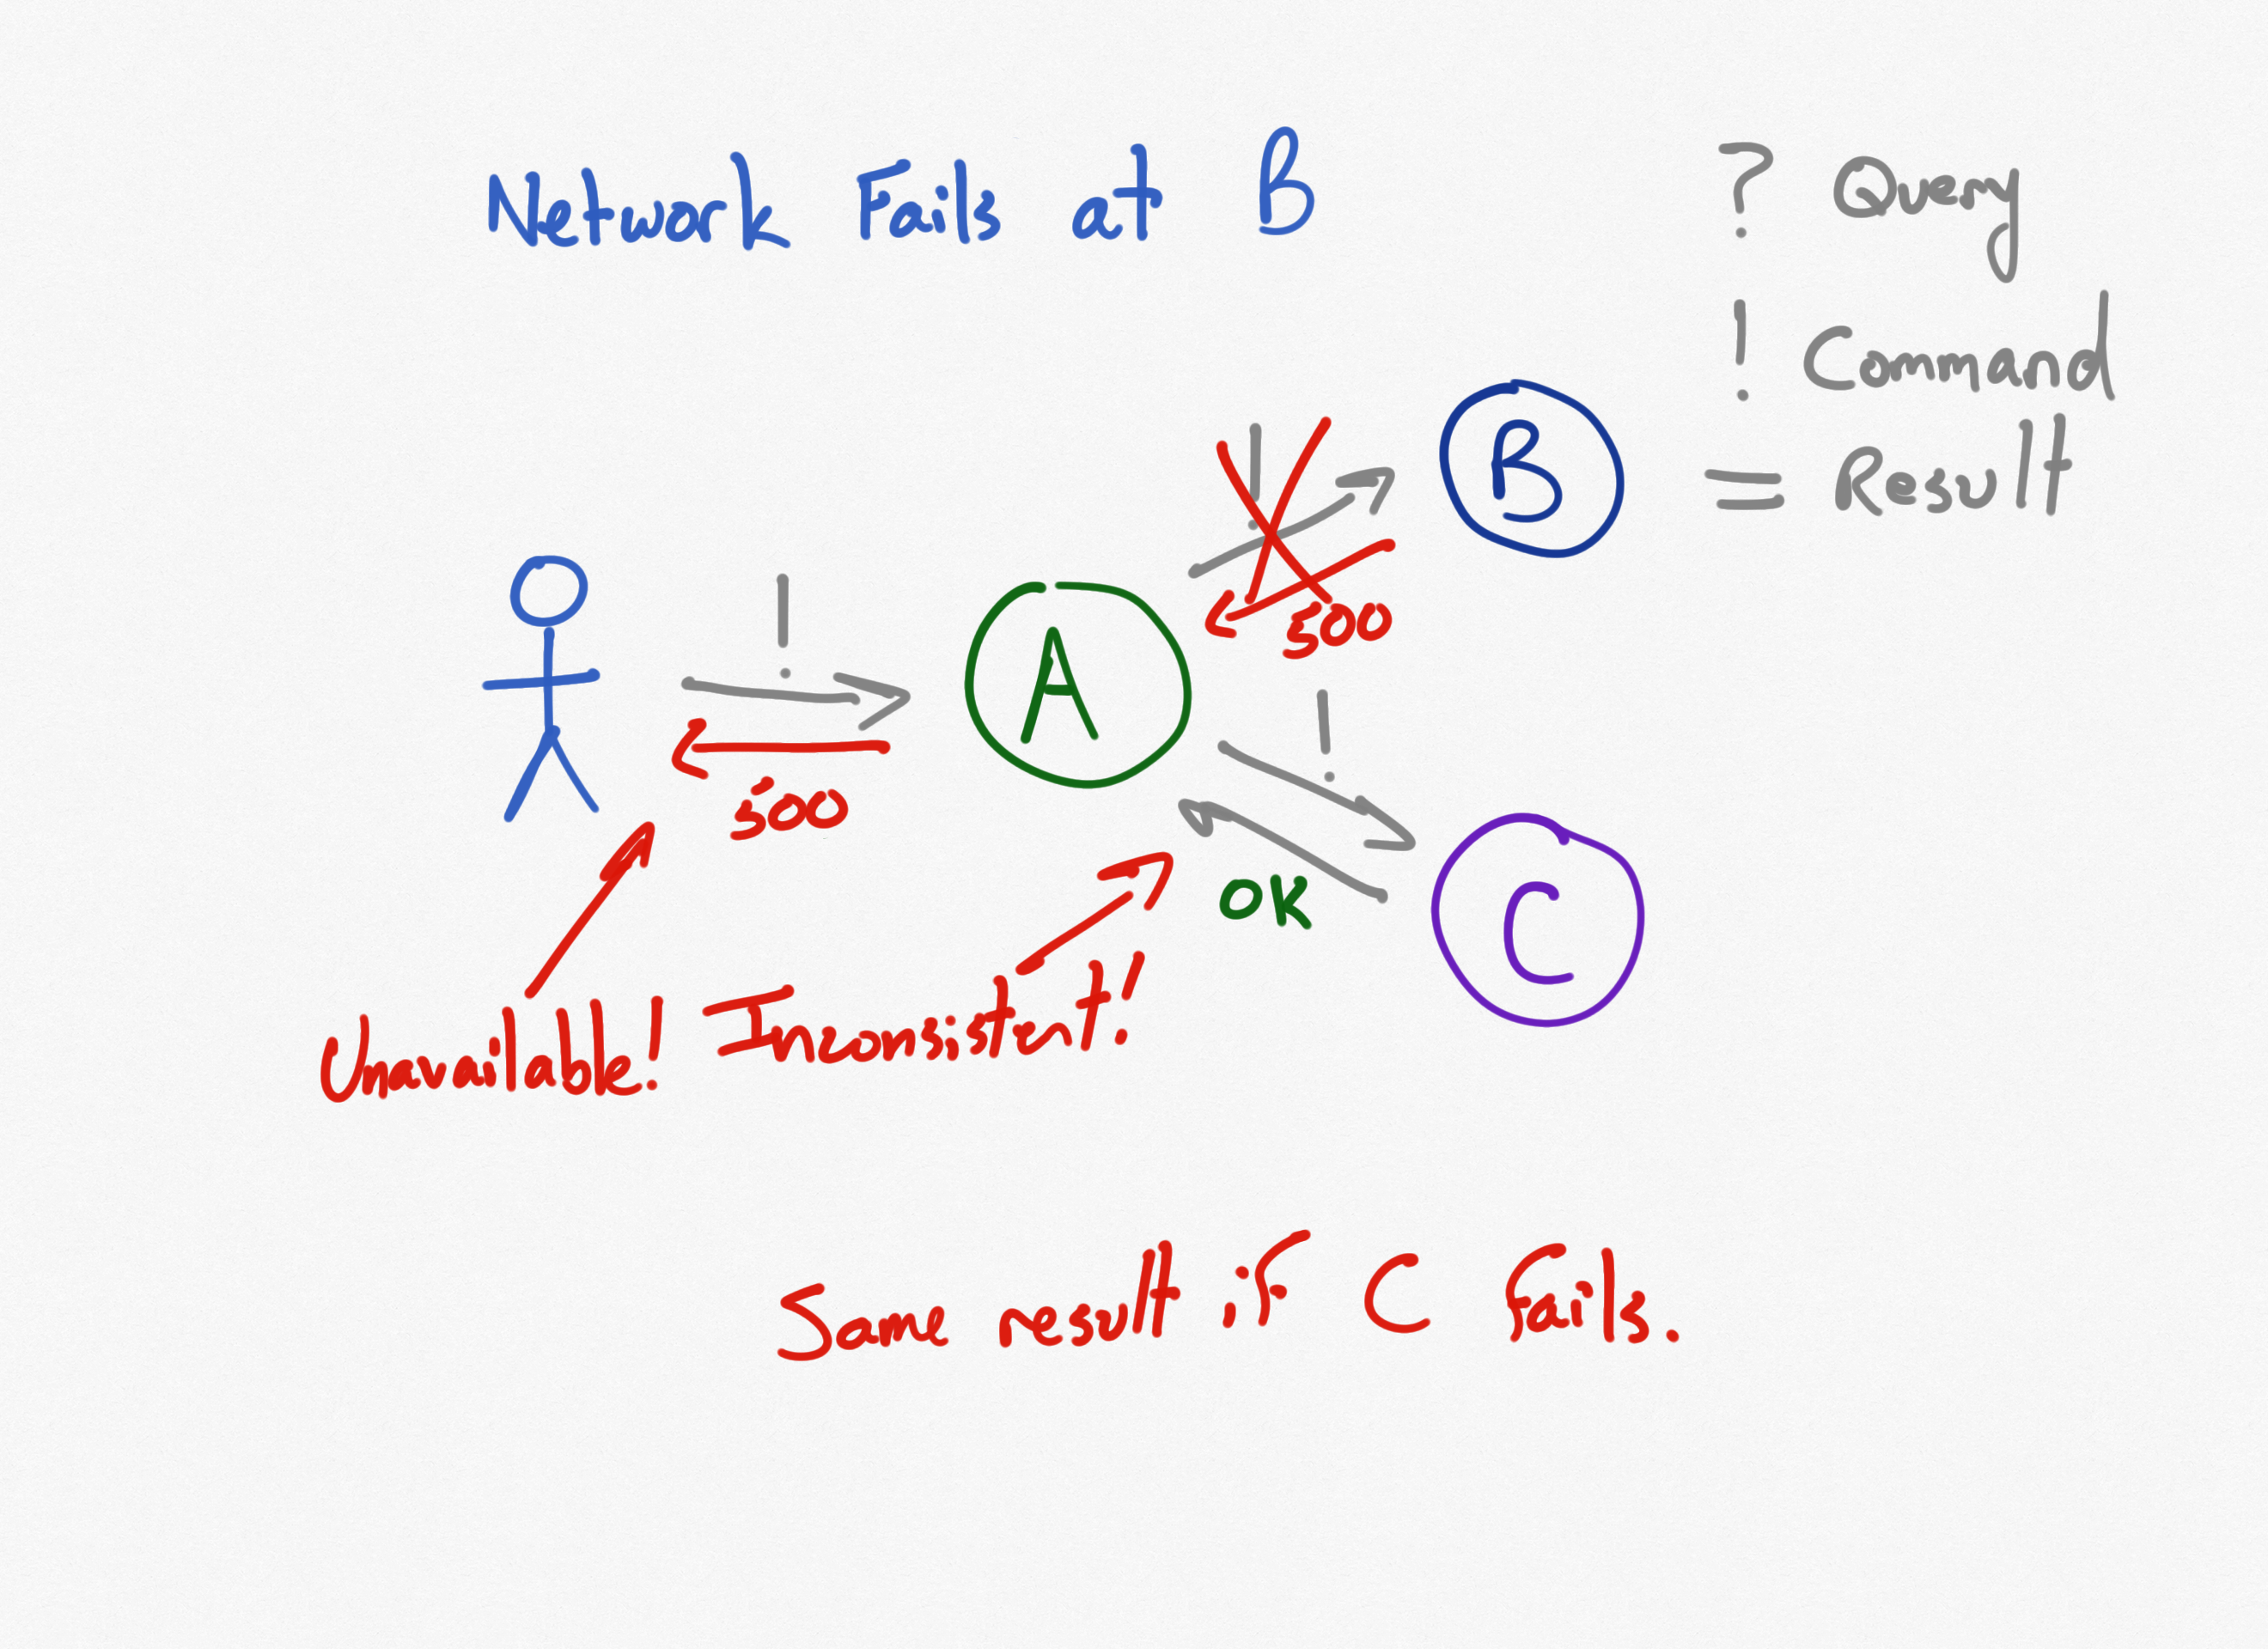 CAP Microservices Diagram 7 - Synchronous Commands with failure